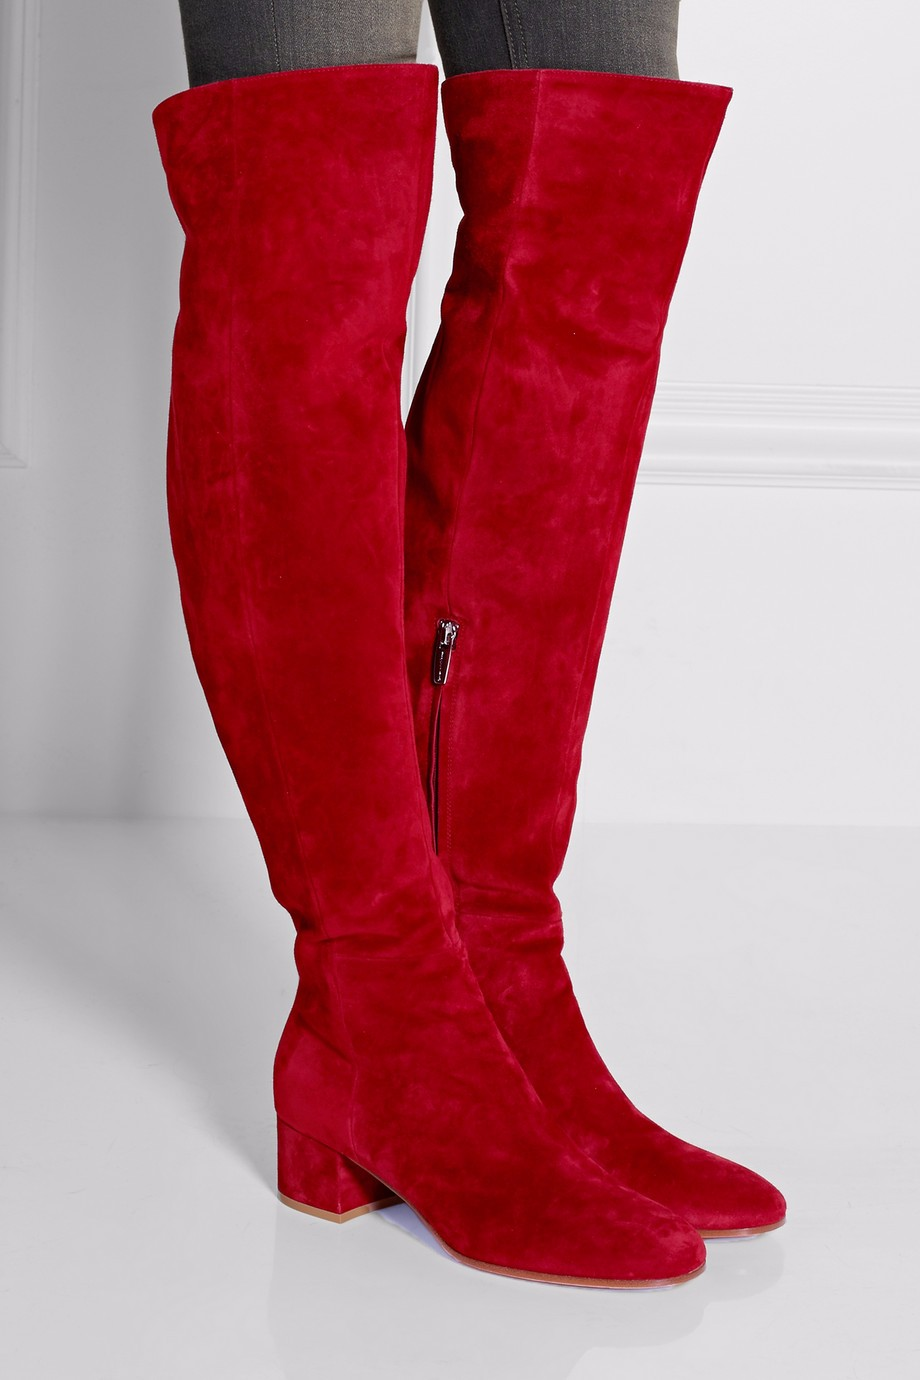 Women Red Winter Suede Over The Knee Boots Round Toe Thick Heels Tight High Boots Side Zipper Stretch Long Boots Plus SizeWomen Red Winter Suede Over The Knee Boots Round Toe Thick Heels Tight High Boots Side Zipper Stretch Long Boots Plus Size